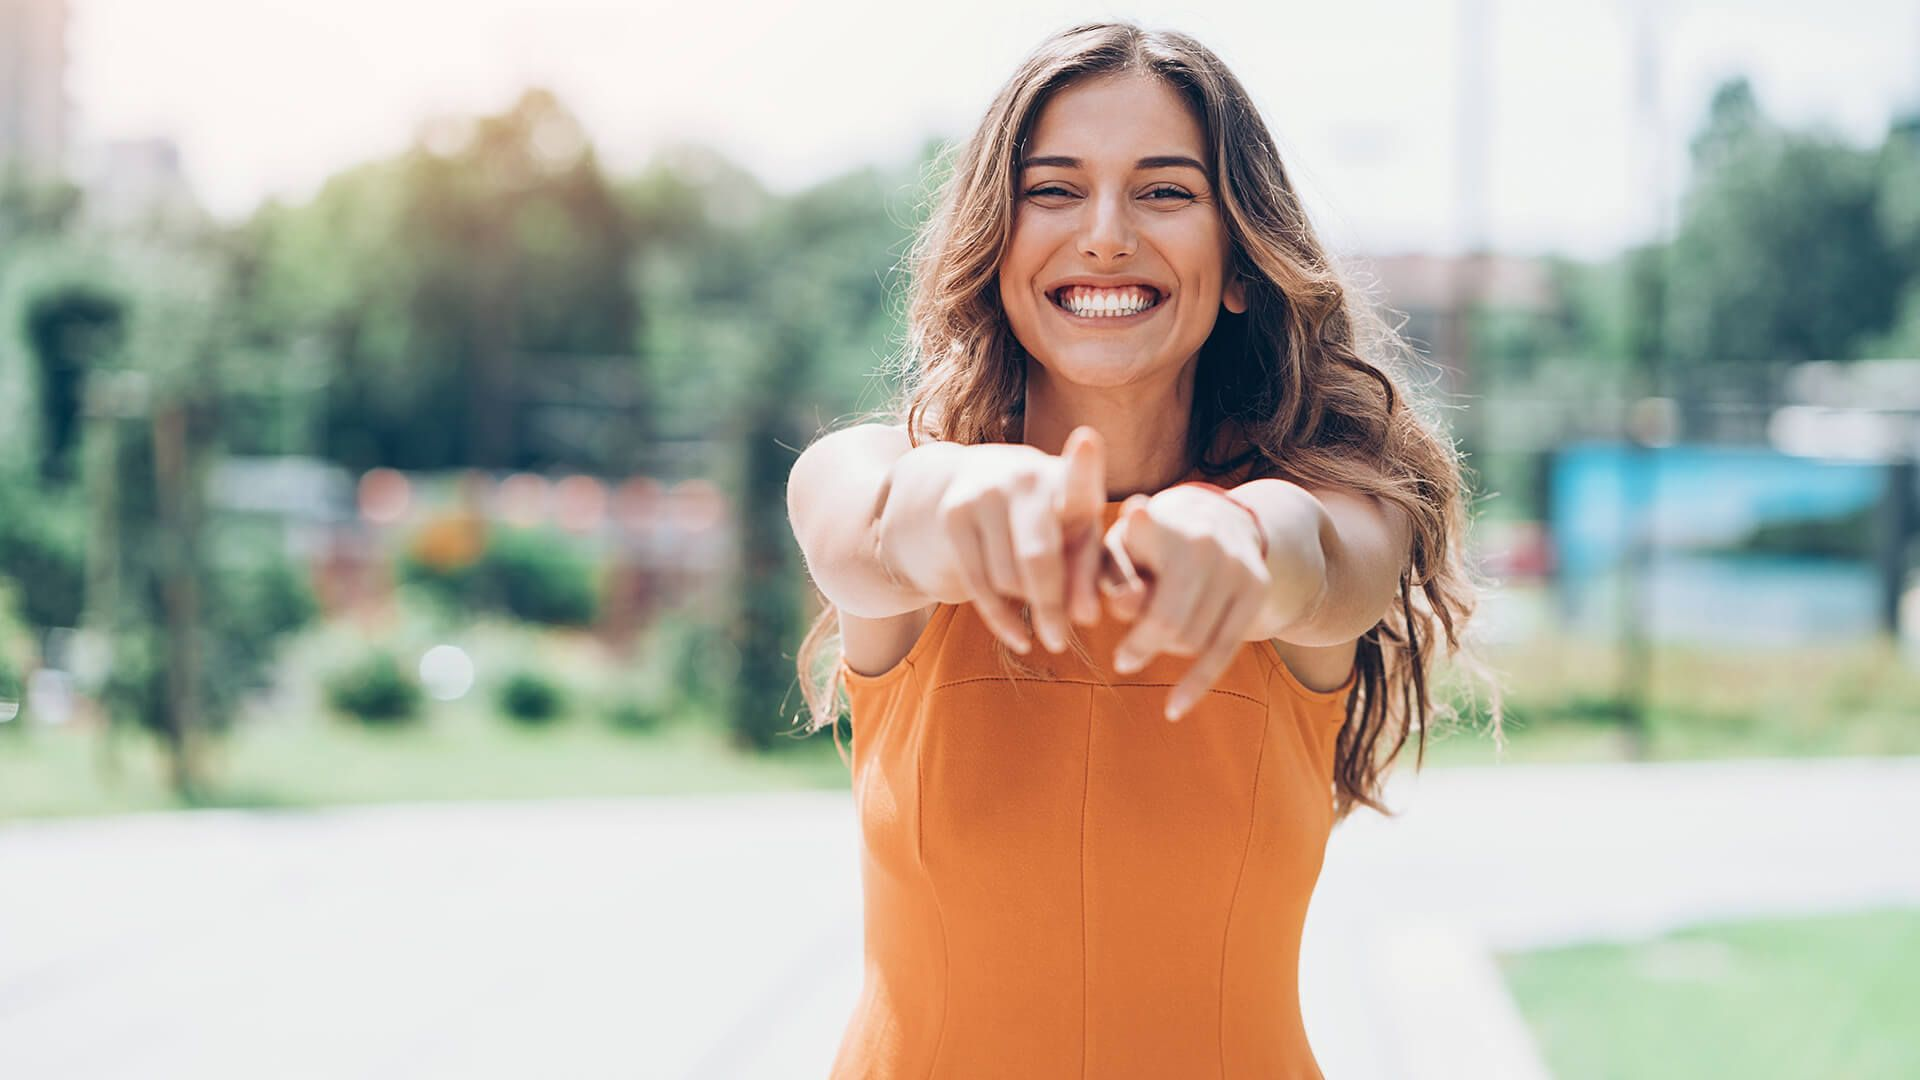 young woman outdoors on a sunny day pointing